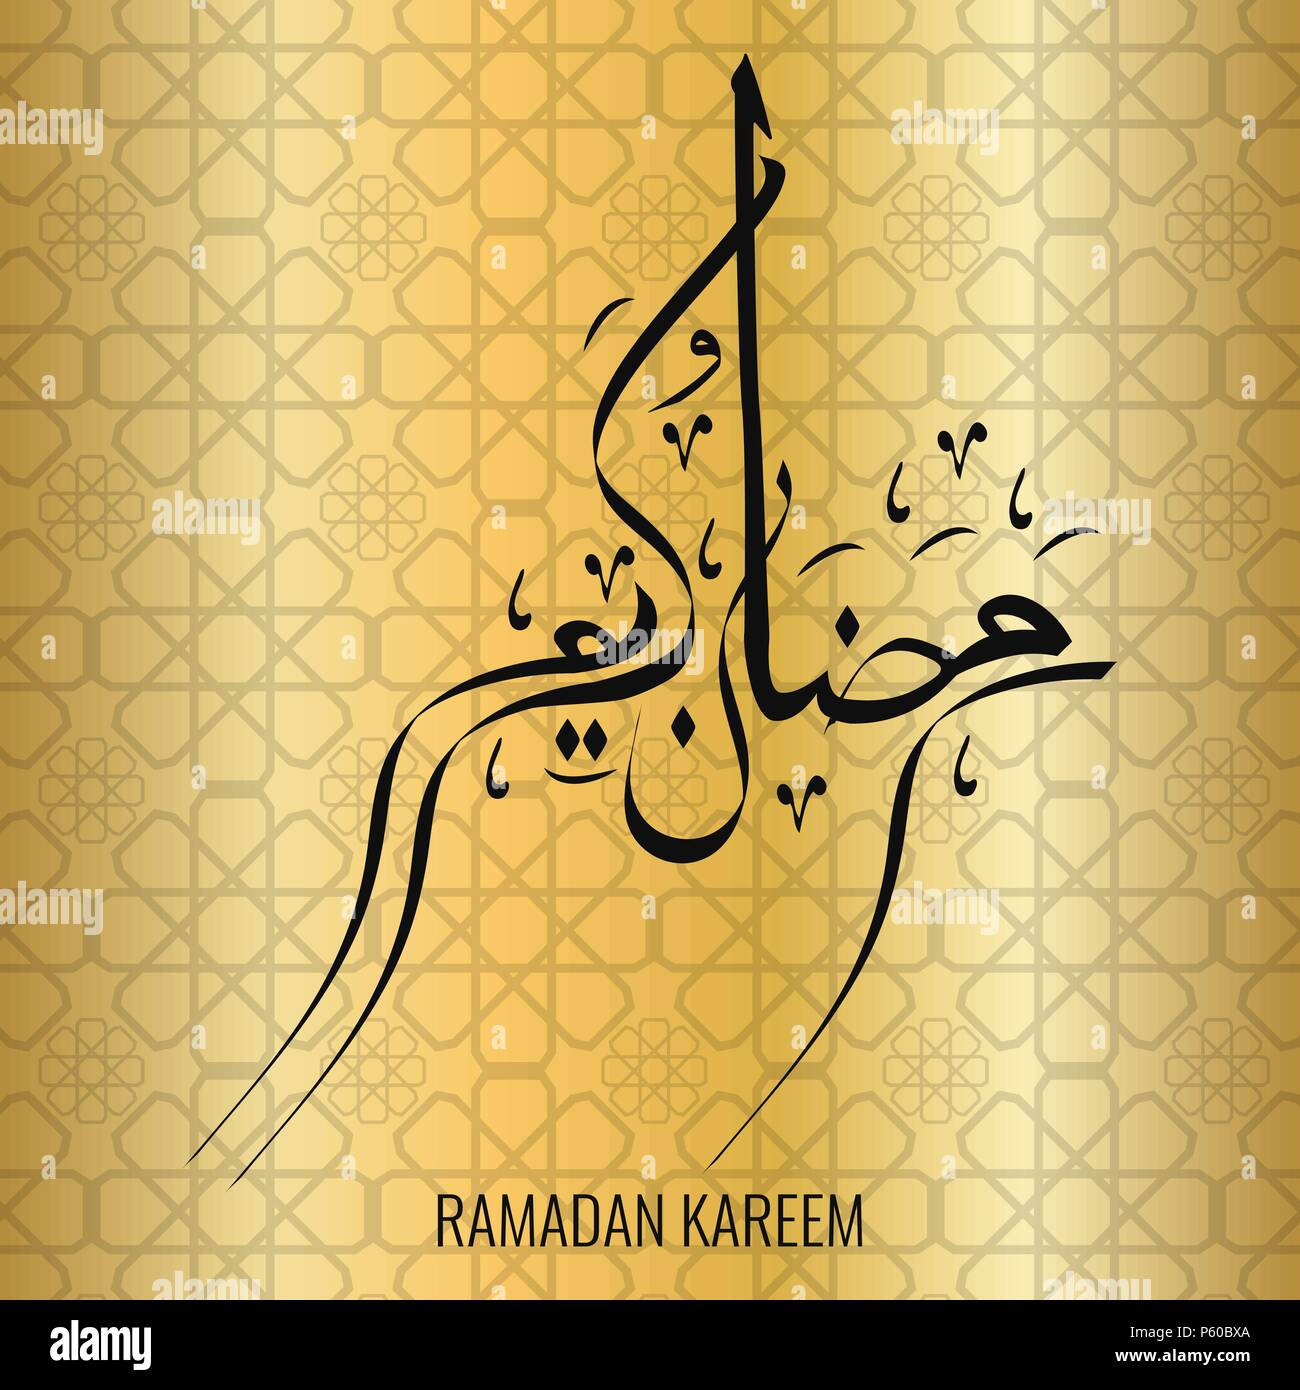 Ramadan kareem beautiful greeting card beautiful ornate background ramadan kareem beautiful greeting card beautiful ornate background with arabic calligraphy which means ramadan kareem for muslim community to ce m4hsunfo